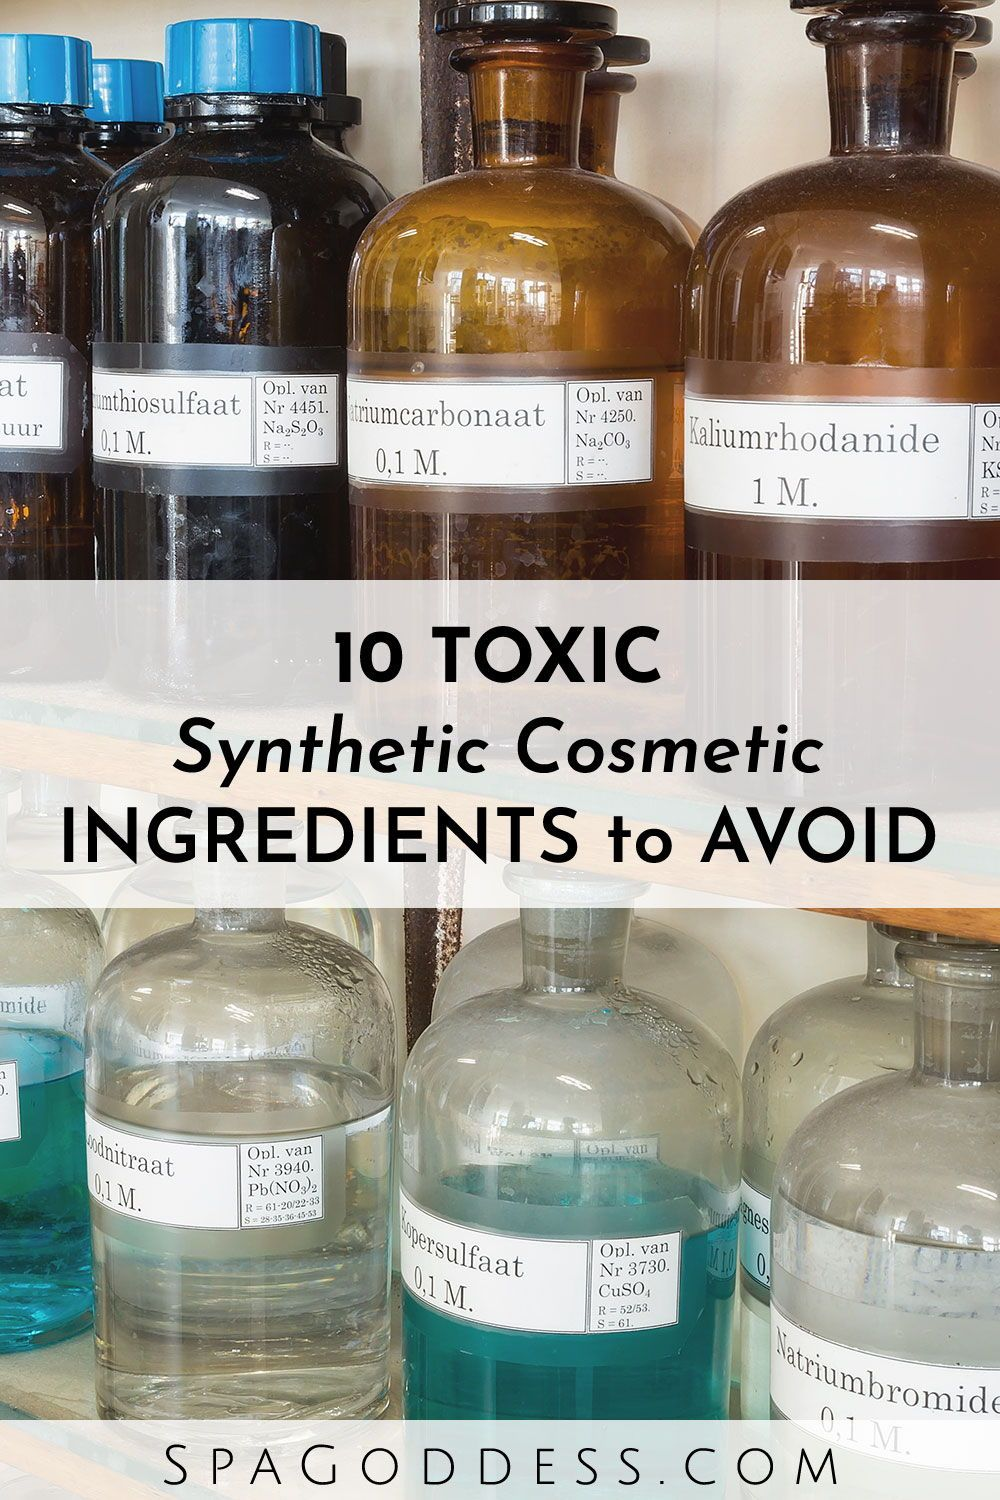 10 Synthetic Cosmetic Ingredients to Avoid | Spa Day + Self